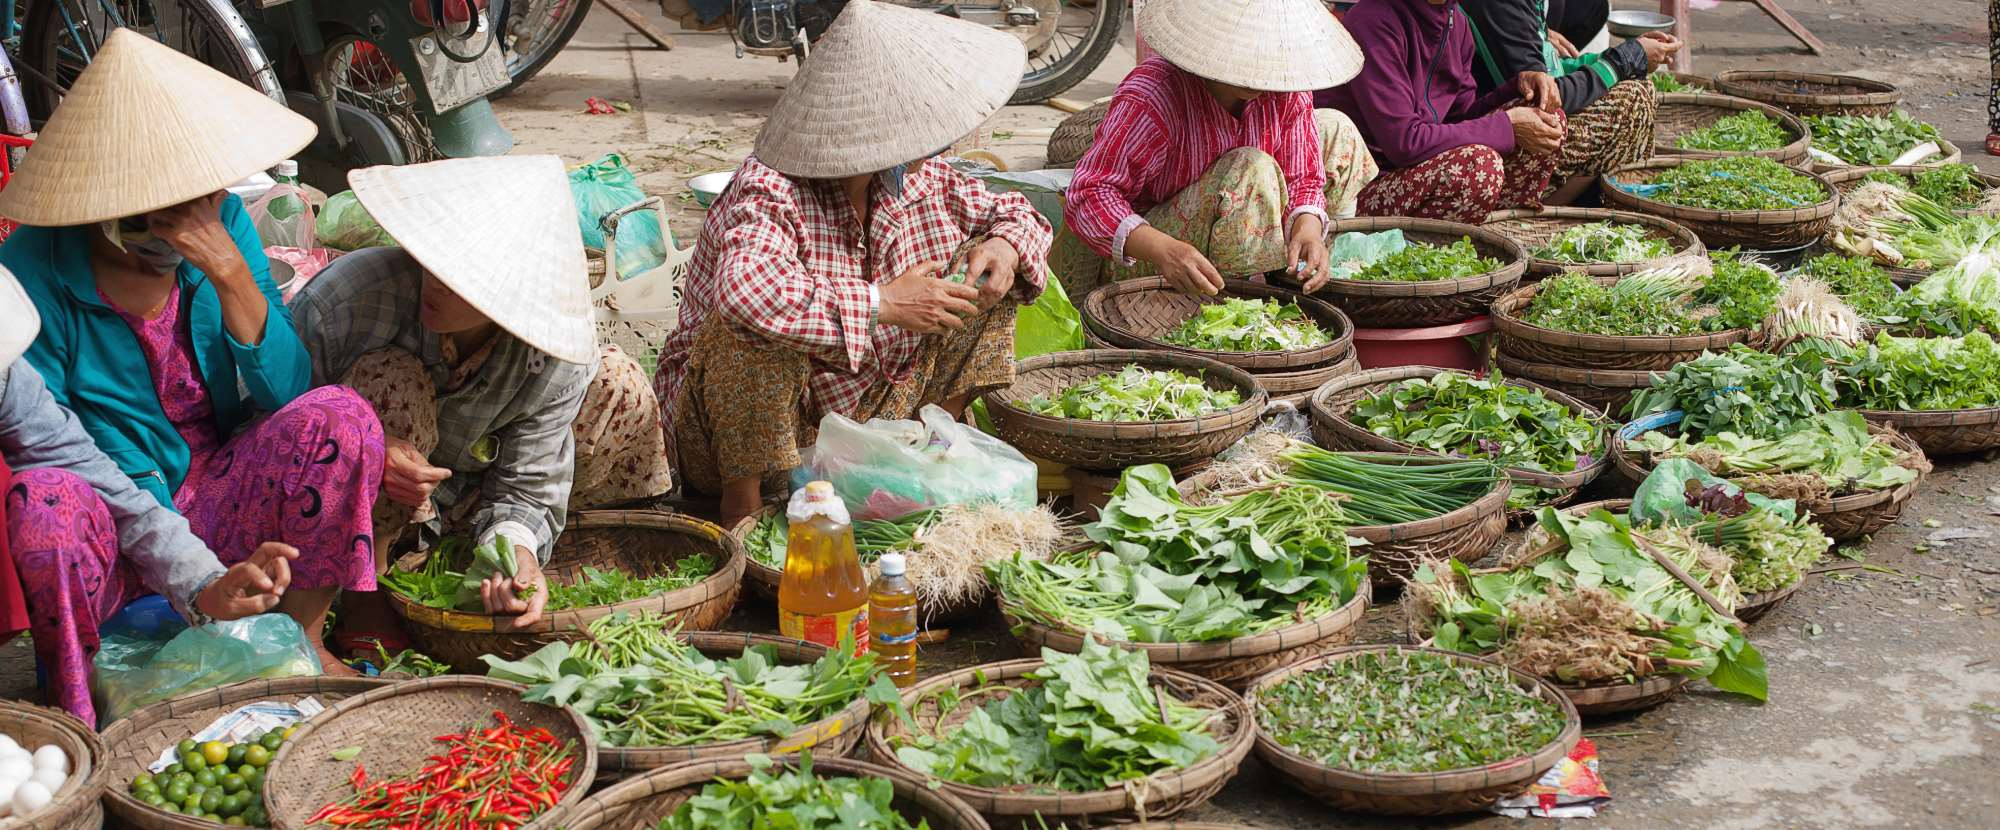 The Ultimate Guide to Food in Vietnam (Prepare to Get Hungry!)